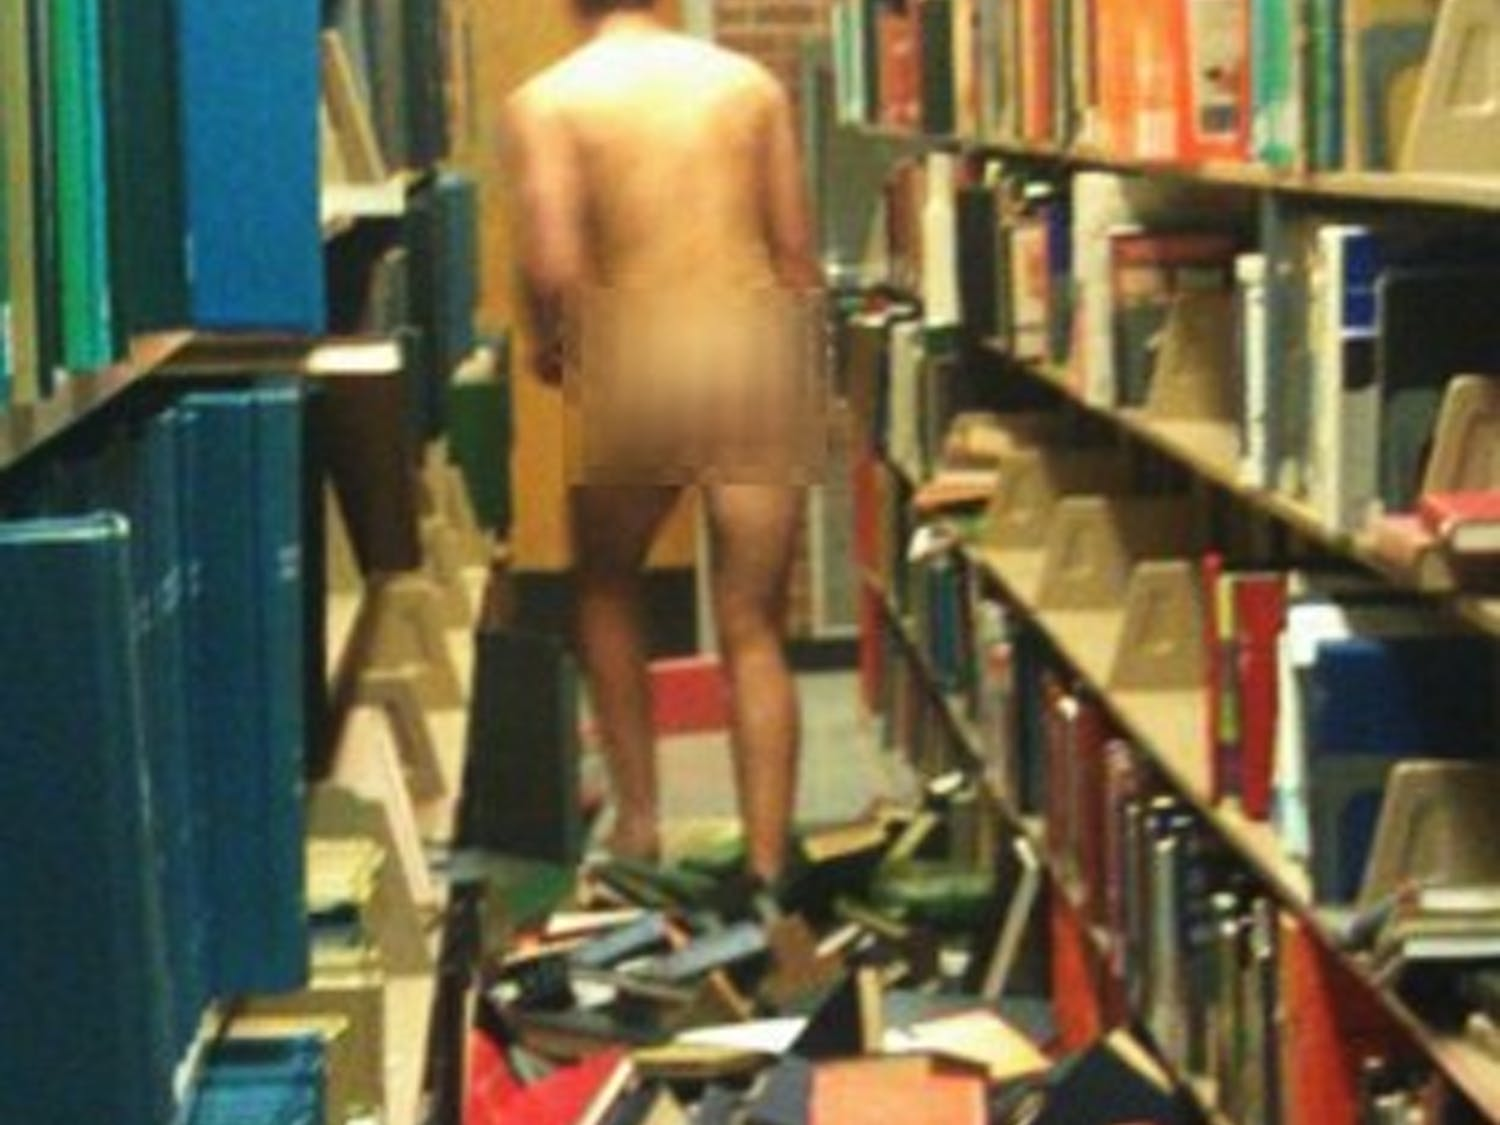 Seth Pacewas caught streaking in Pace Library in 2010 as a North Carolina State University first-year.